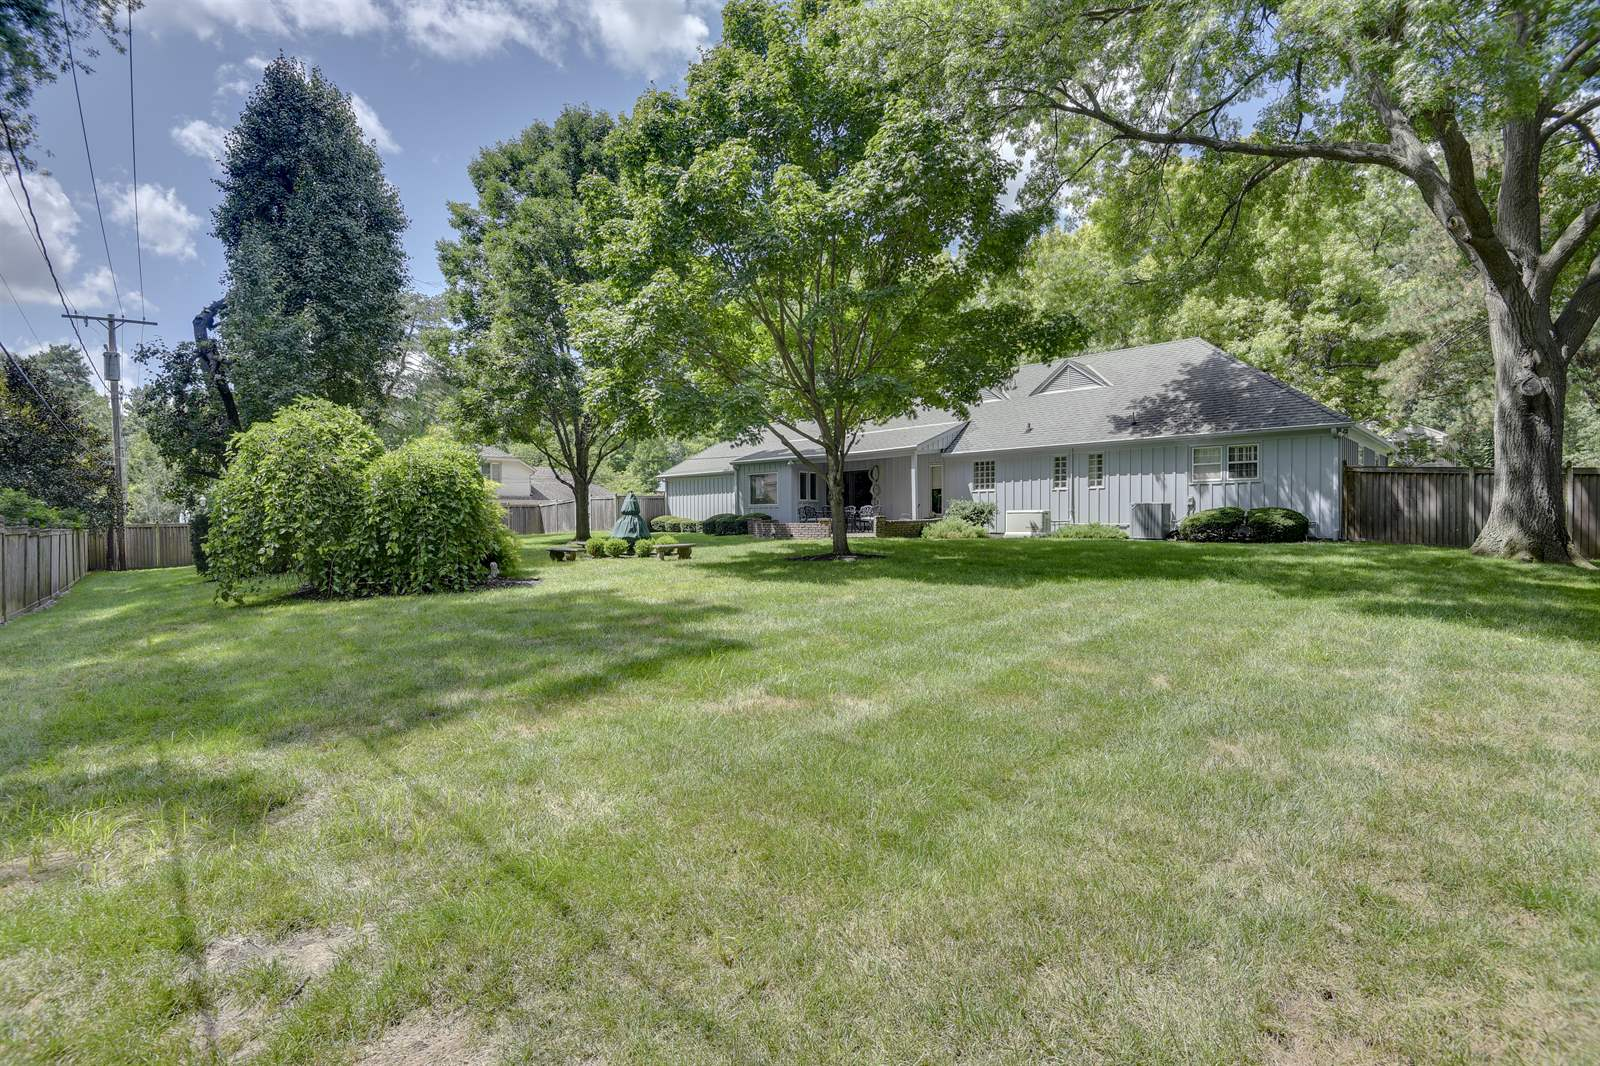 2517 W 68th Street, Mission Hills, KS 66208